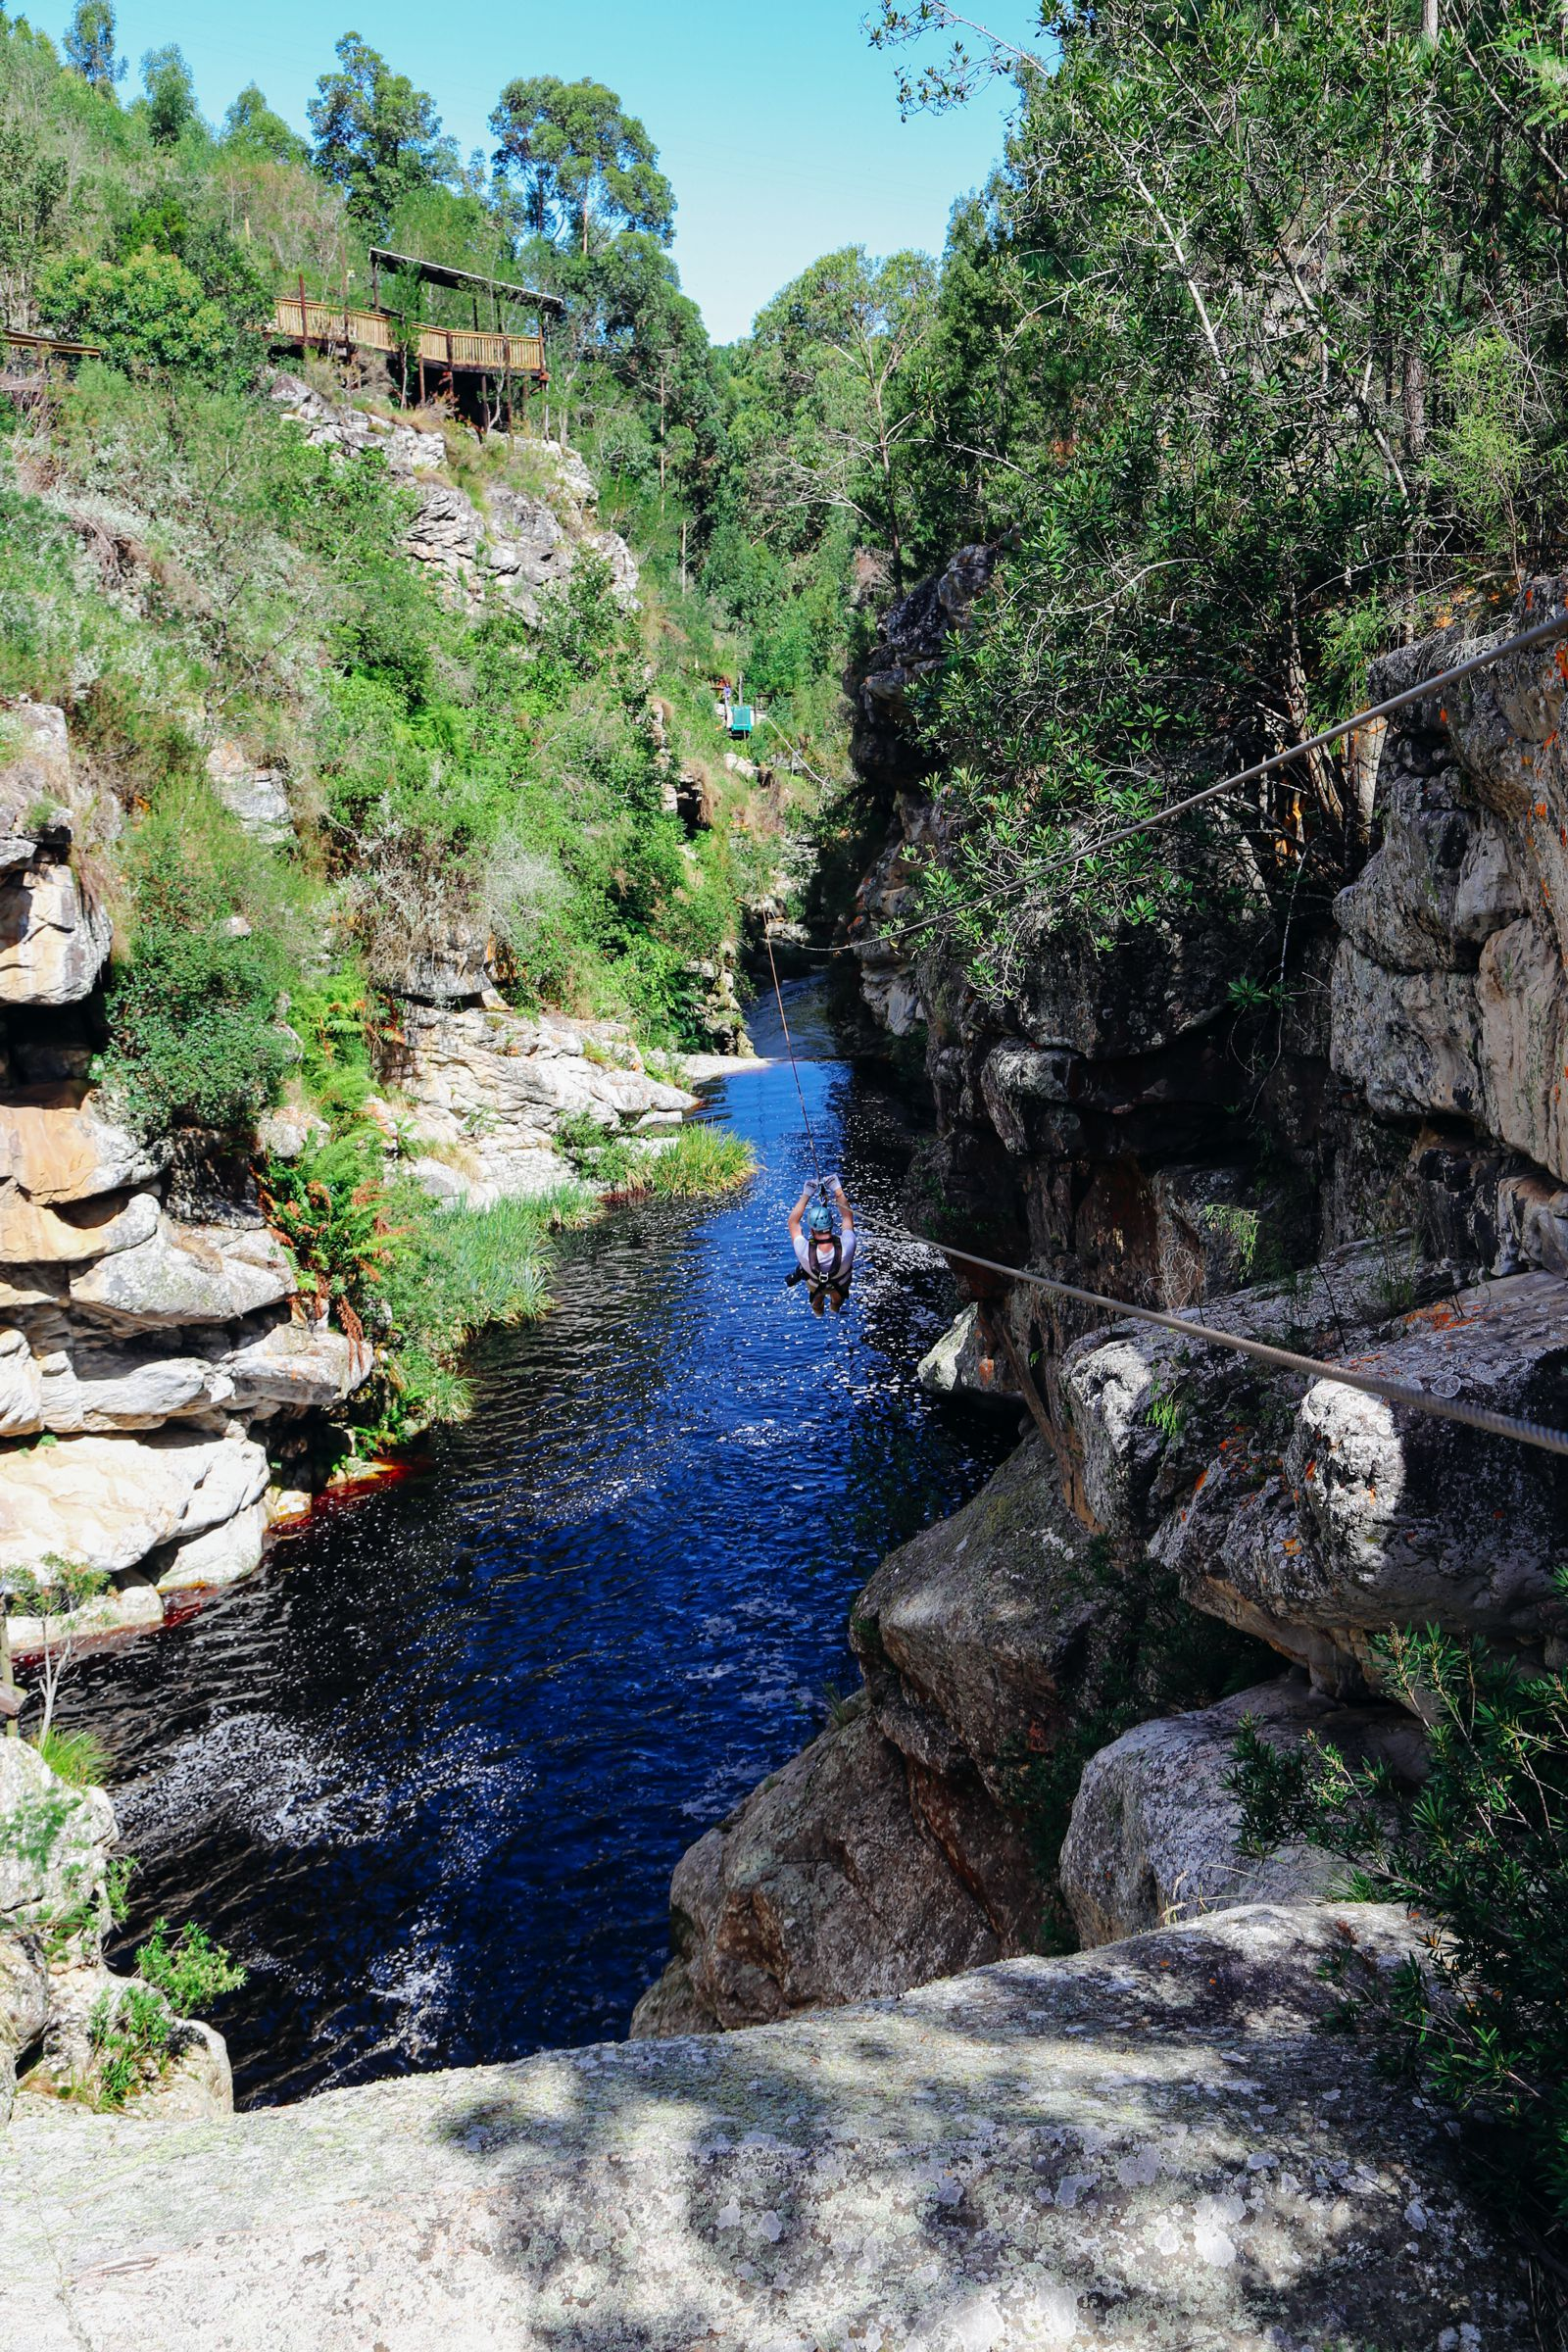 Arrival In The Eastern Cape Of South Africa (27)